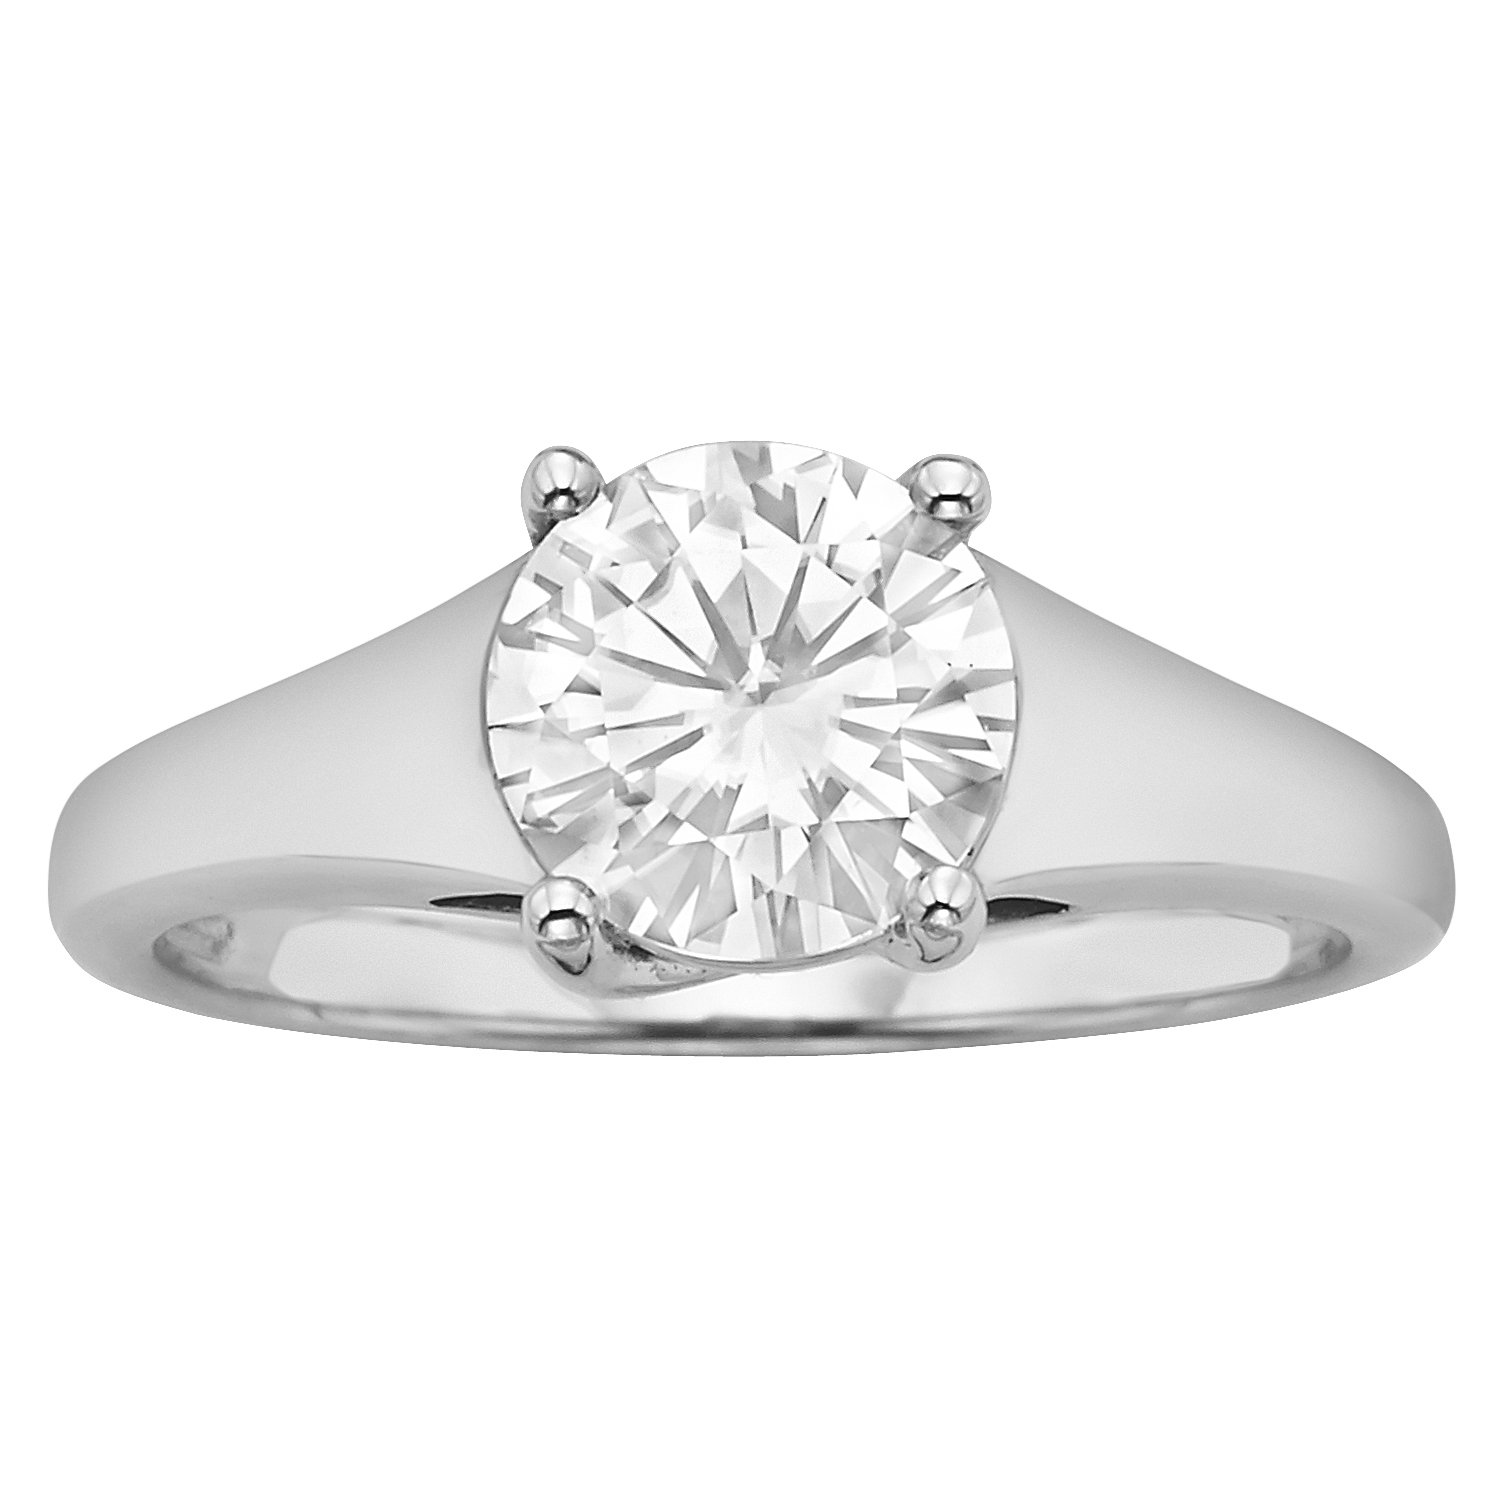 Forever Brilliant 7.5mm Moissanite Solitaire Engagement Ring - size 6, 1.50ct DEW By Charles & Colvard